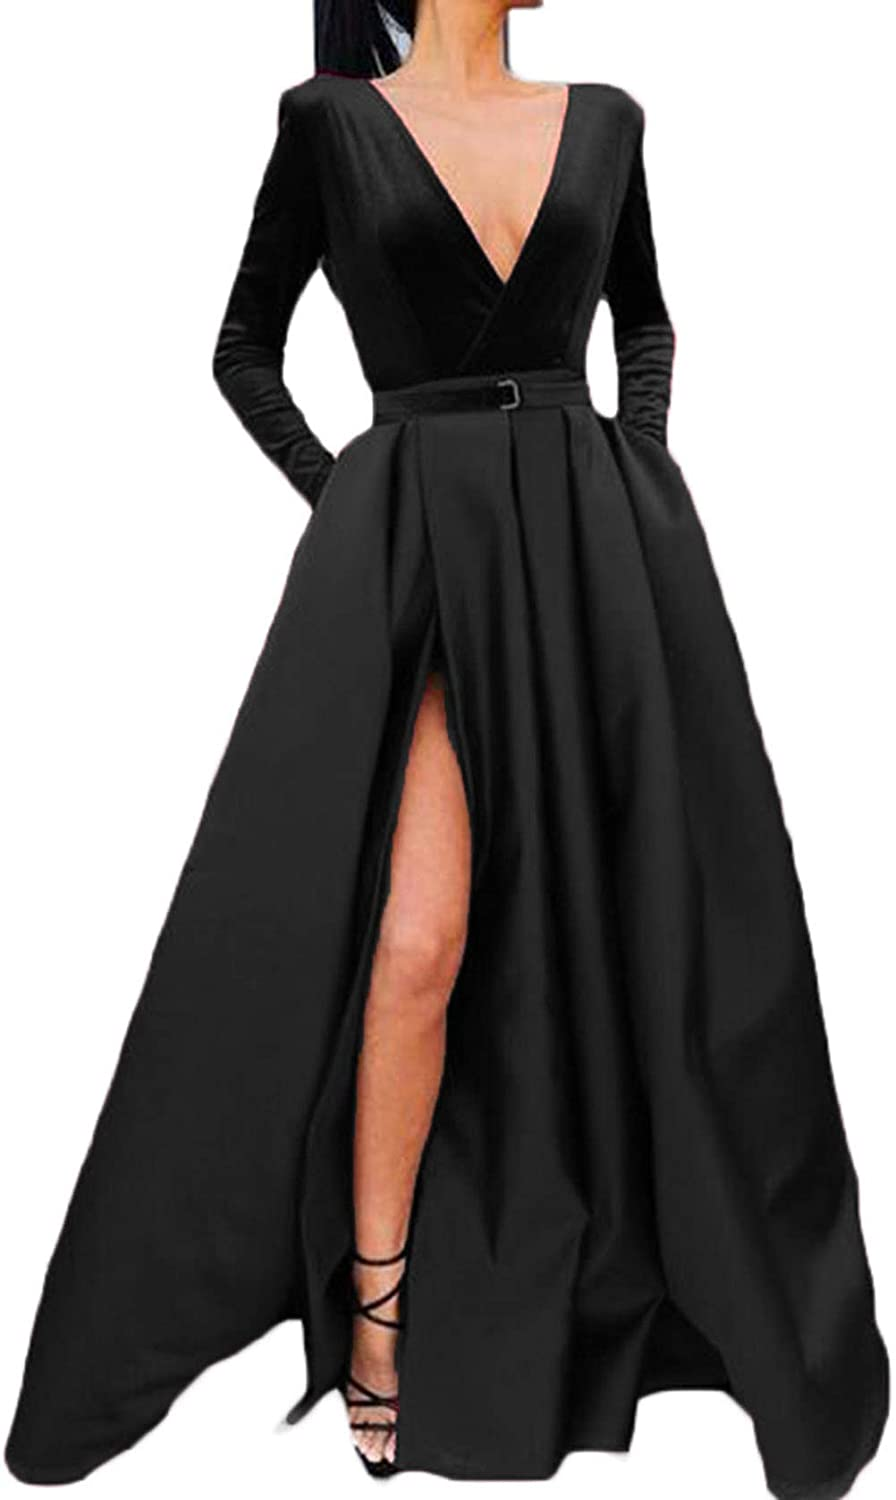 Black Ri Yun Women's Sexy Deep VNeck Prom Dresses Long Sleeve 2019 High Slit Formal Evening Ball Gowns with Pockets